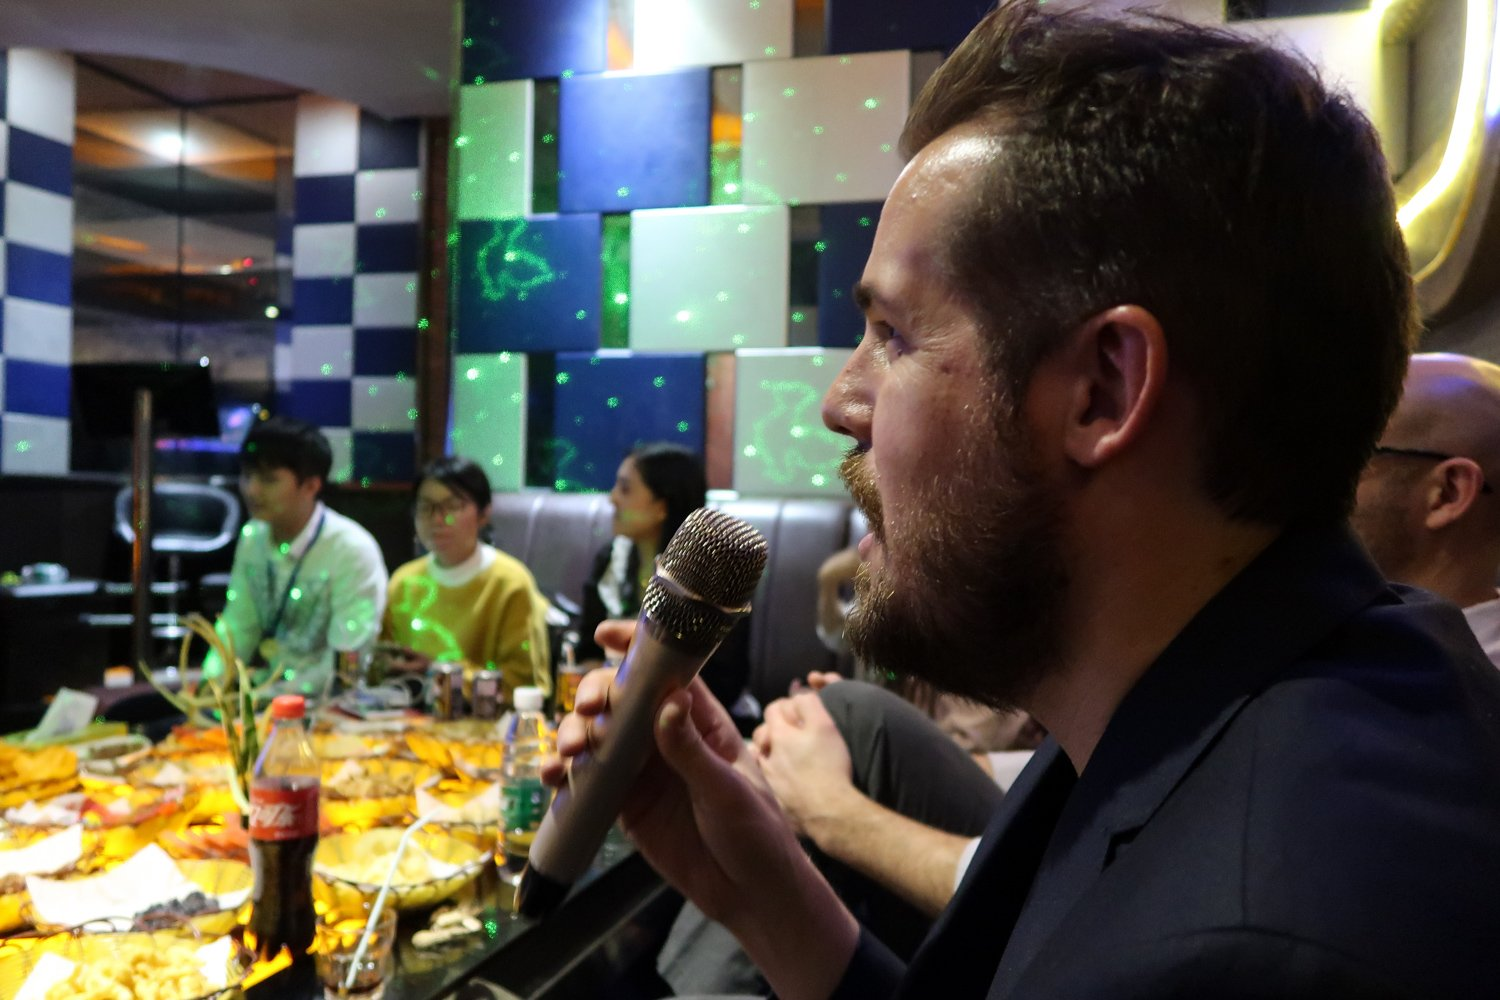 karaoke singing in china